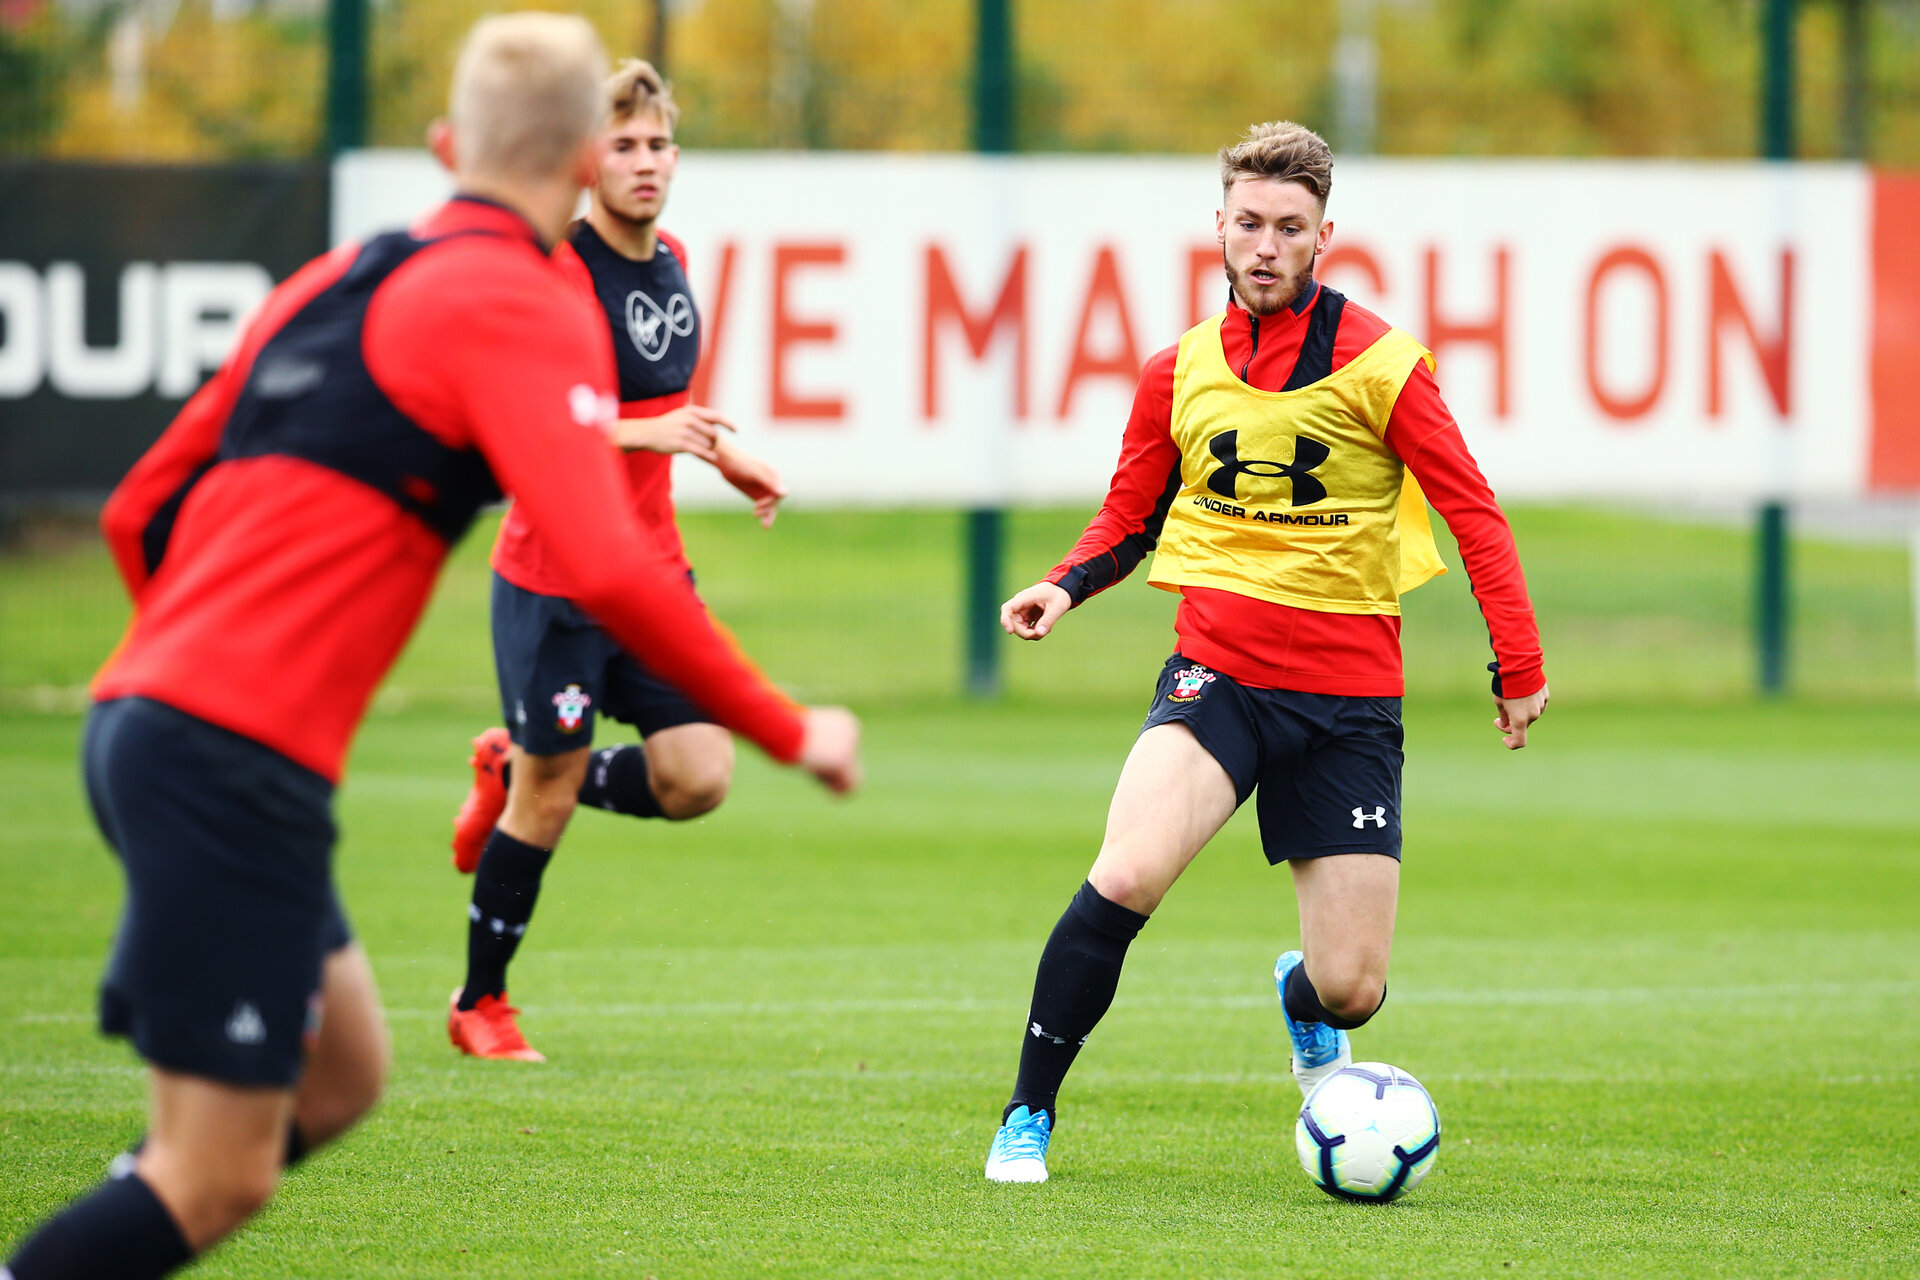 SOUTHAMPTON, ENGLAND - OCTOBER 02: Callum Slattery (right) during an U23 Southampton FC training session at Staplewood Complex on October 2, 2018 in Southampton, England. (Photo by James Bridle - Southampton FC/Southampton FC via Getty Images)